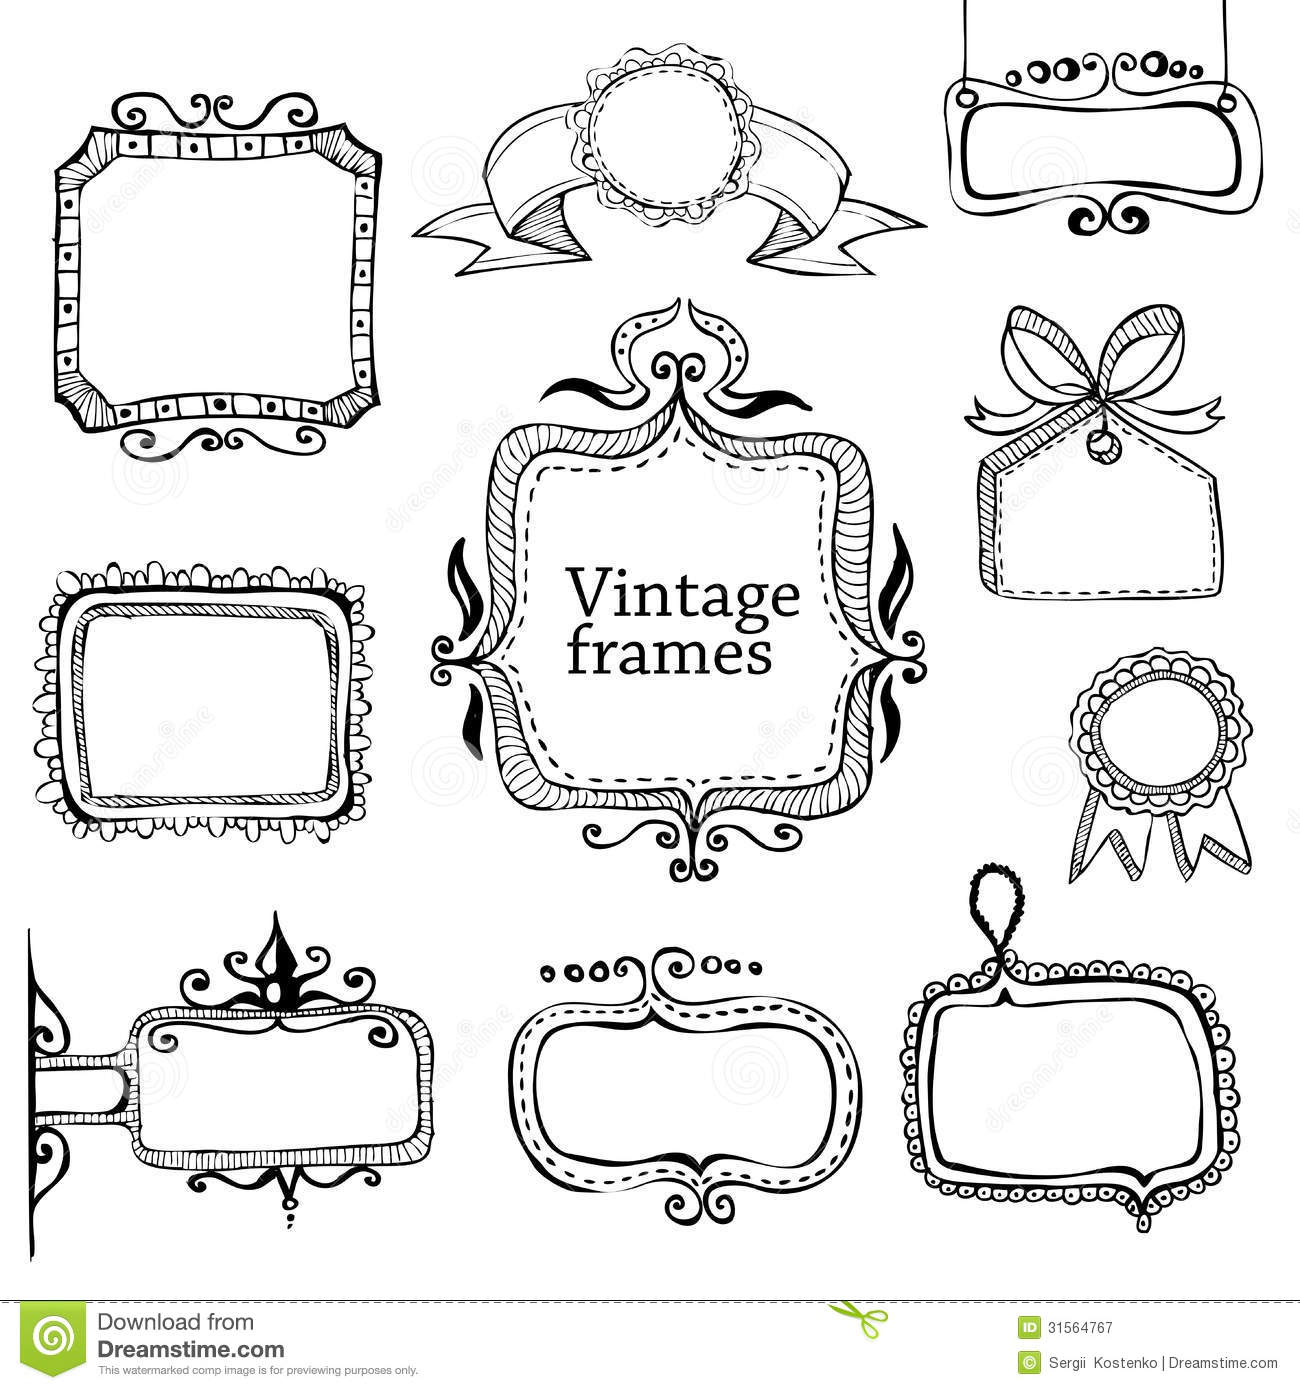 b0ad3150481 Vintage Hand Drawn Frames Collection Stock Vector - Illustration of ...